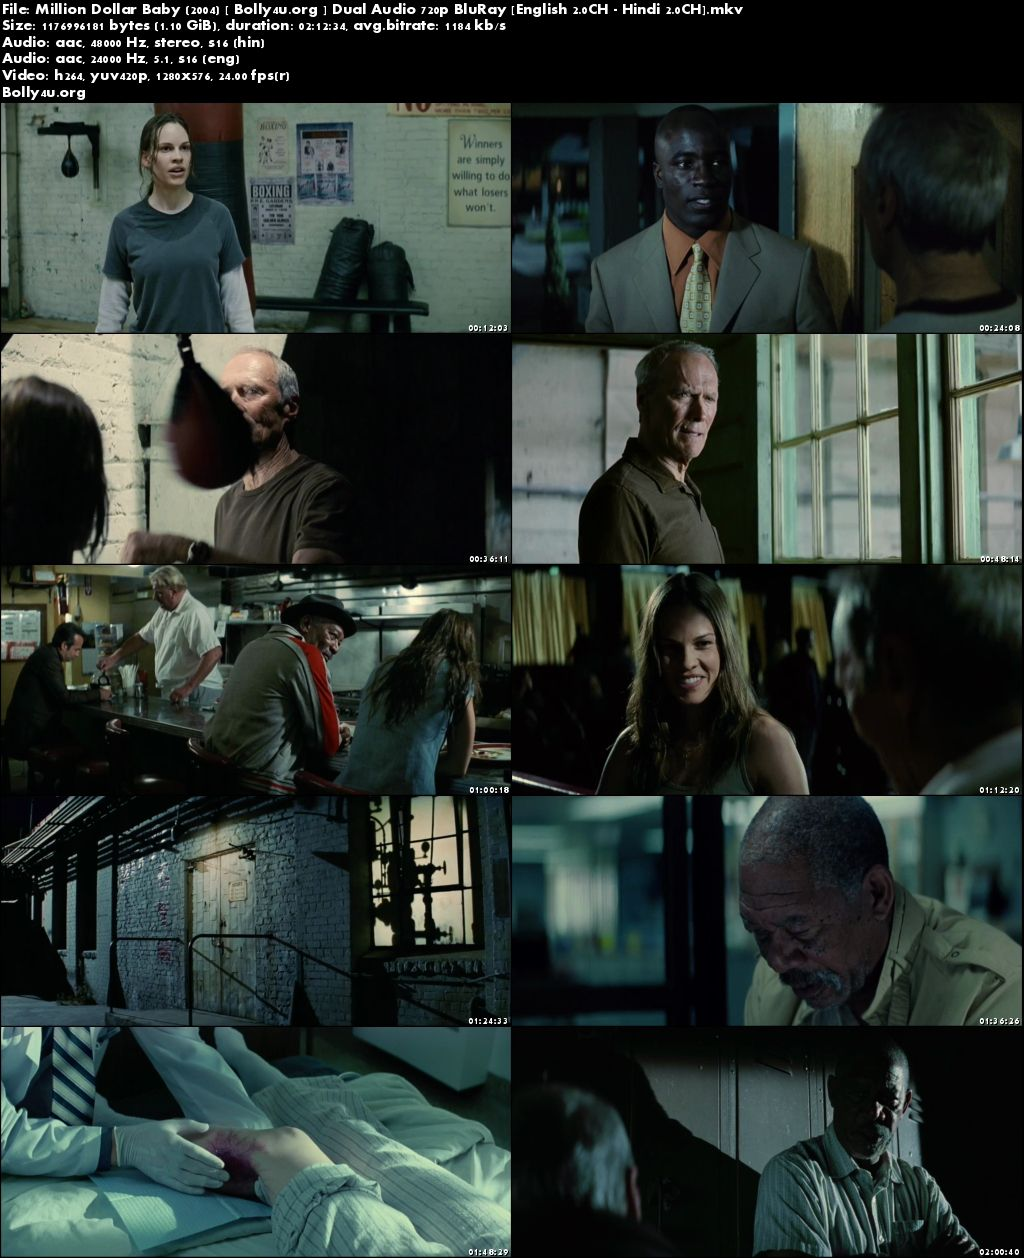 Million Dollar Baby 2004 BluRay 1GB Hindi Dual Audio 720p Download